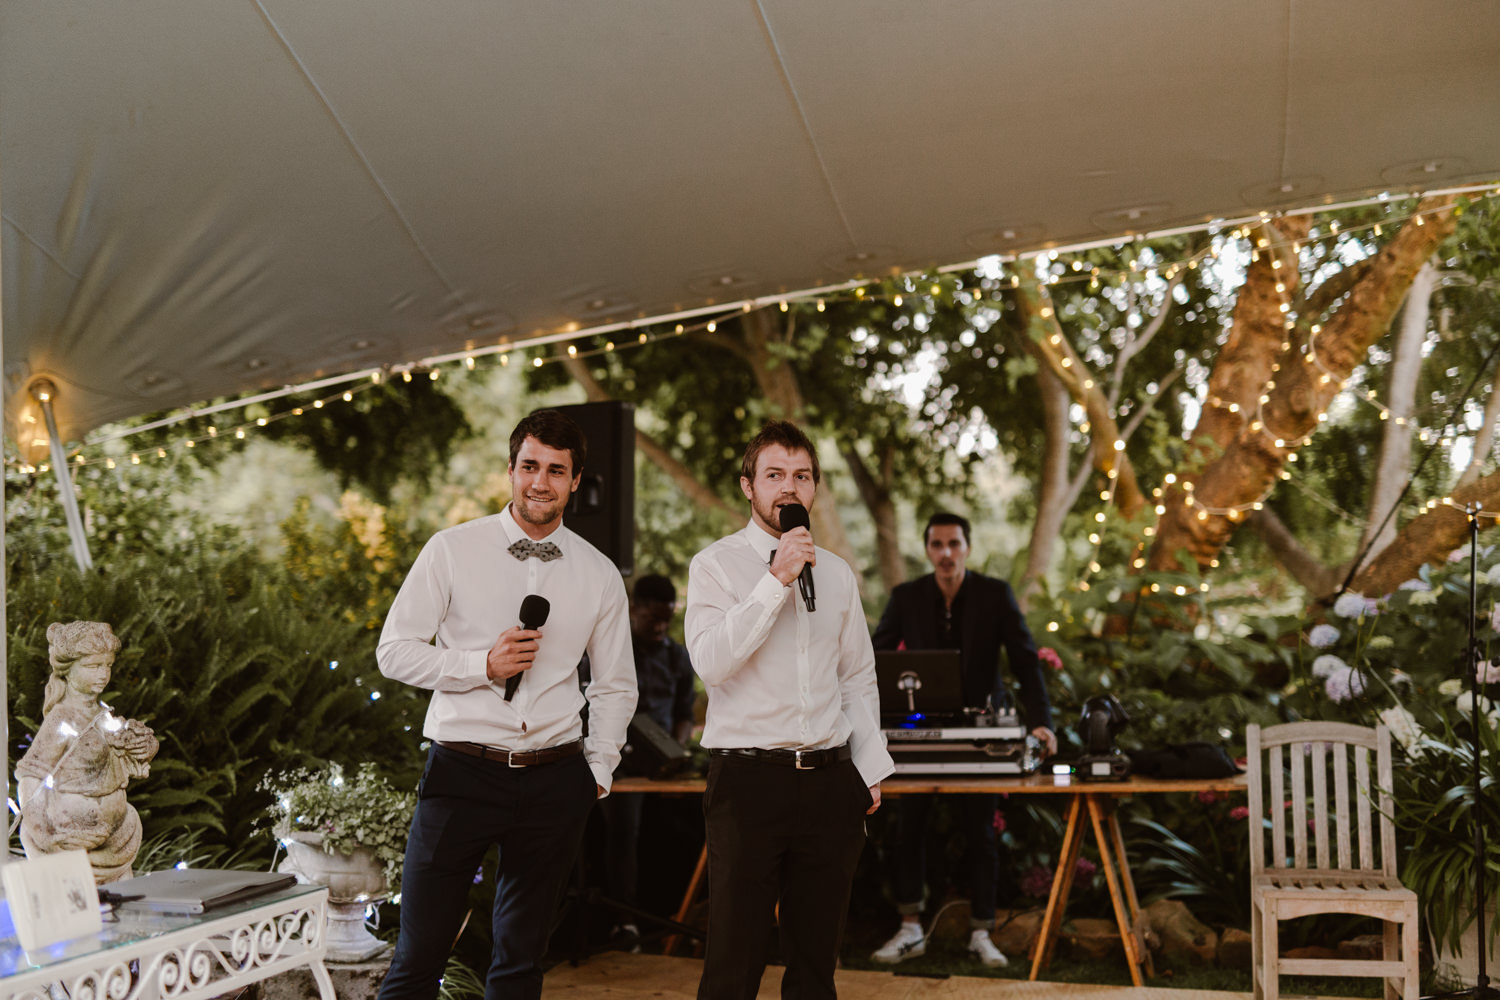 Two groomsmen giving a speech together on two separate wireless microphones.